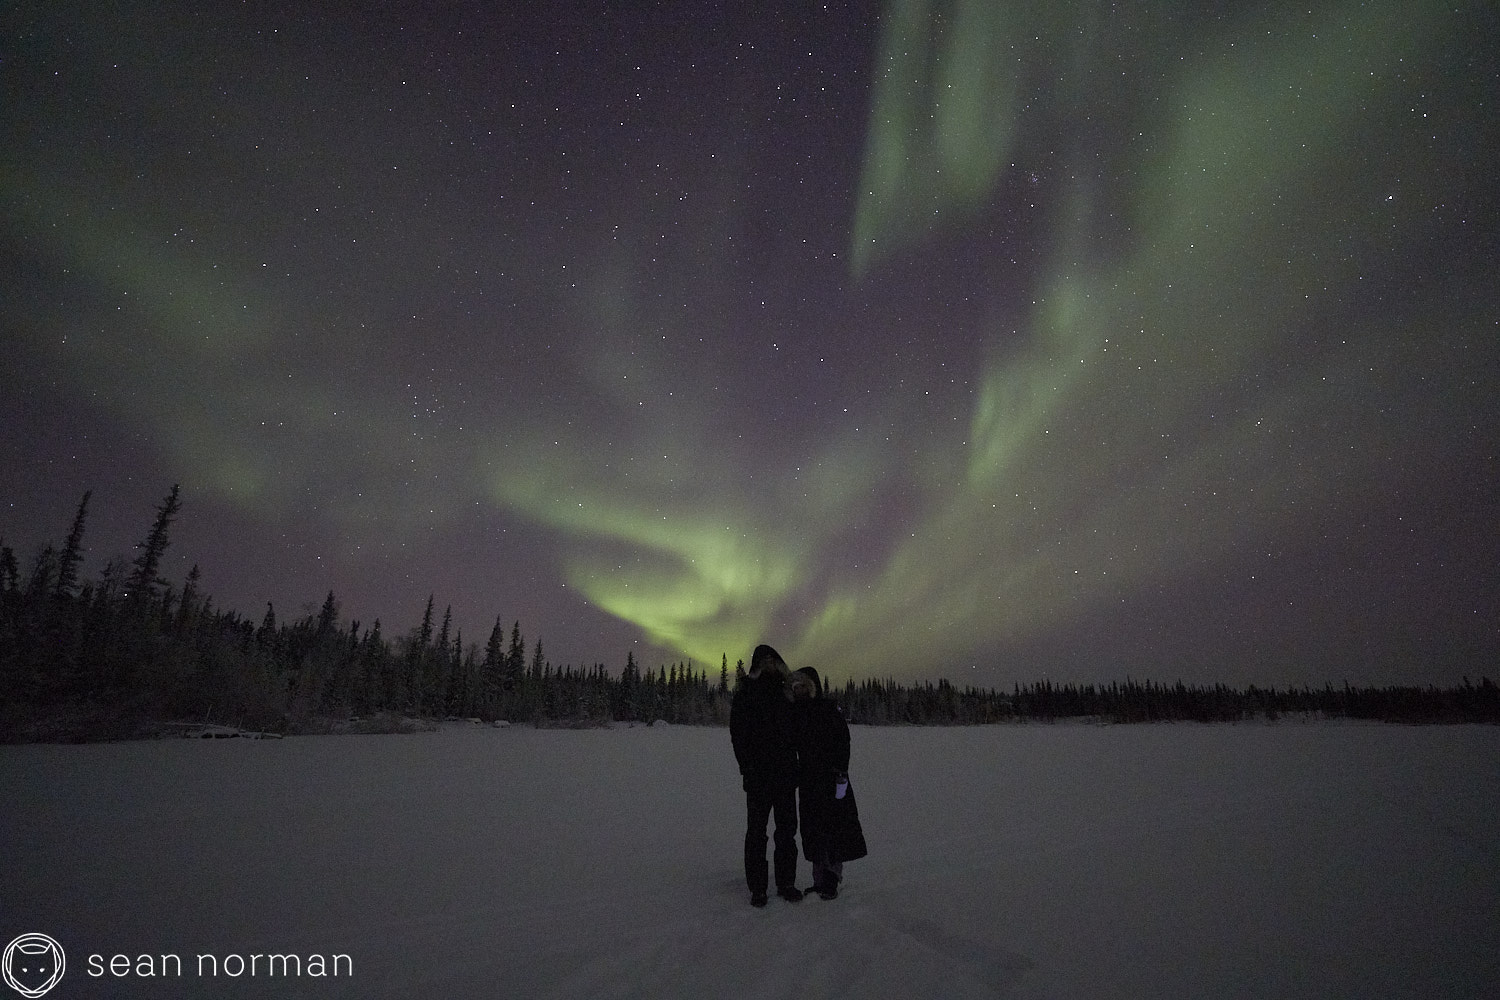 Sean Norman - Yellowknife Aurora Hunting Tour - Northern Lights Tour Guide - 2.jpg